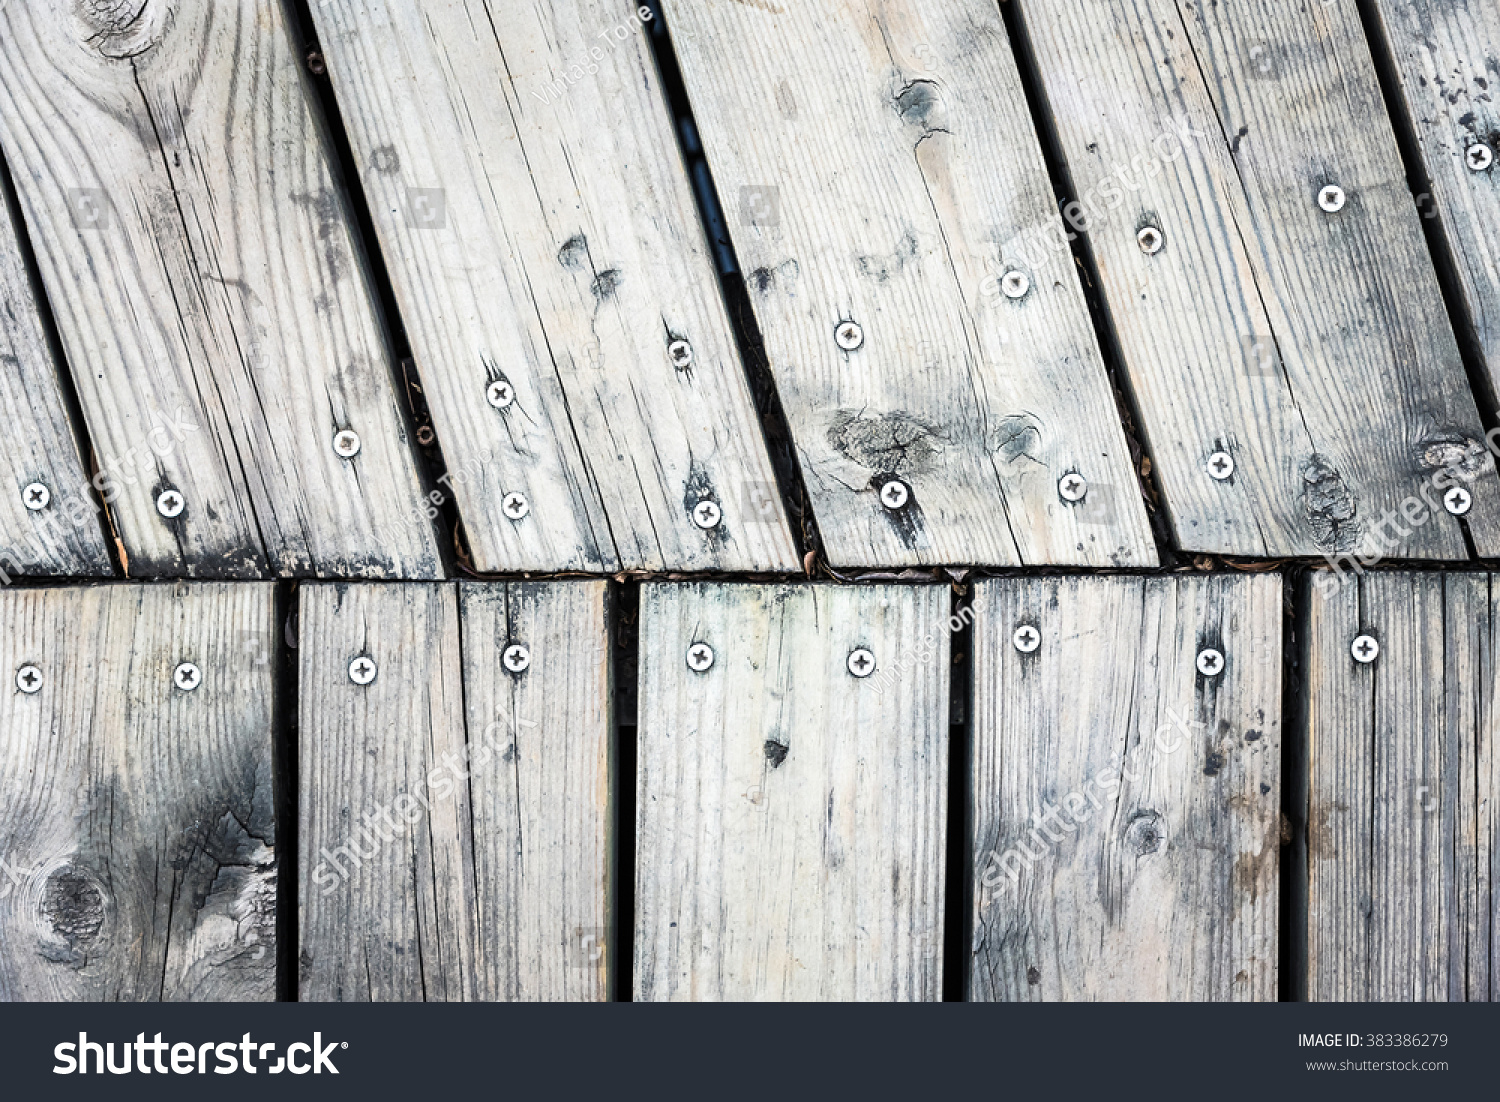 Wood texture wooden plank - White Wood Backgrounds White Wooden Desks Texture Wood Texture Wooden Plank Grain Background